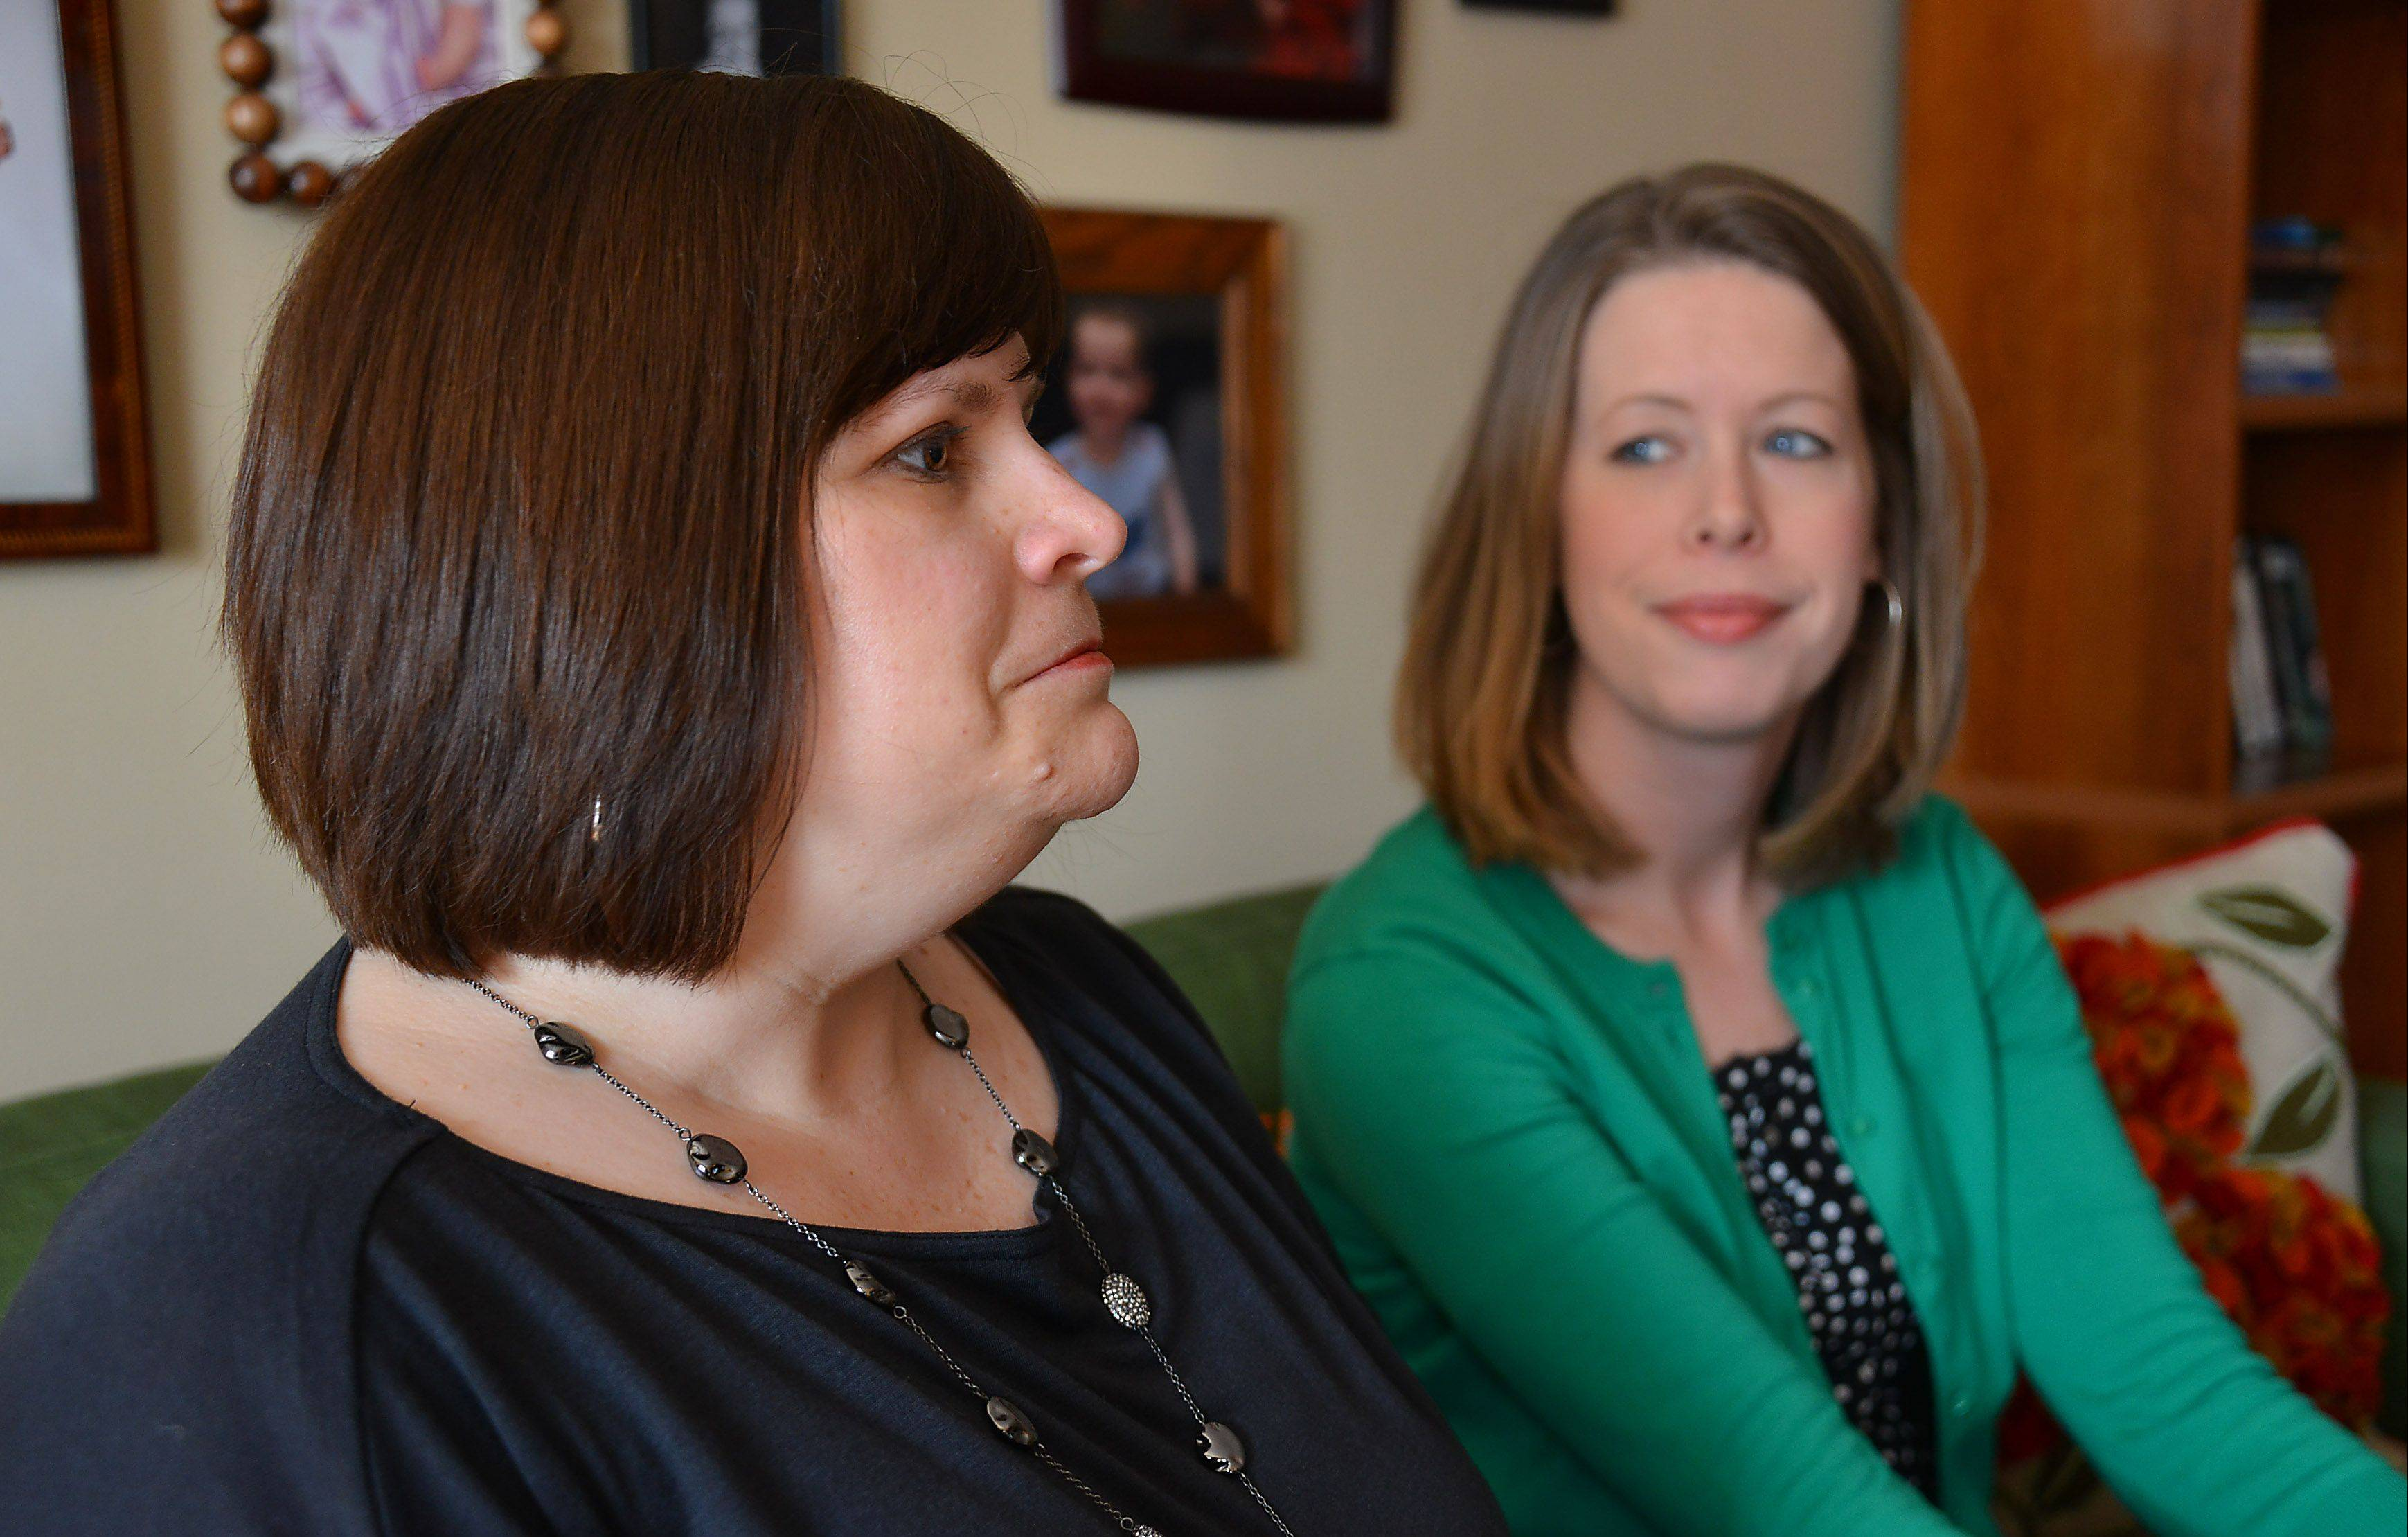 Laura Dennis, right, says she understands when friend Wendy Diez tells the story of how her husband, Chris, died 10 days after the birth of their daughter. Dennis' husband, Kevin, died of a heart attack at age 31.